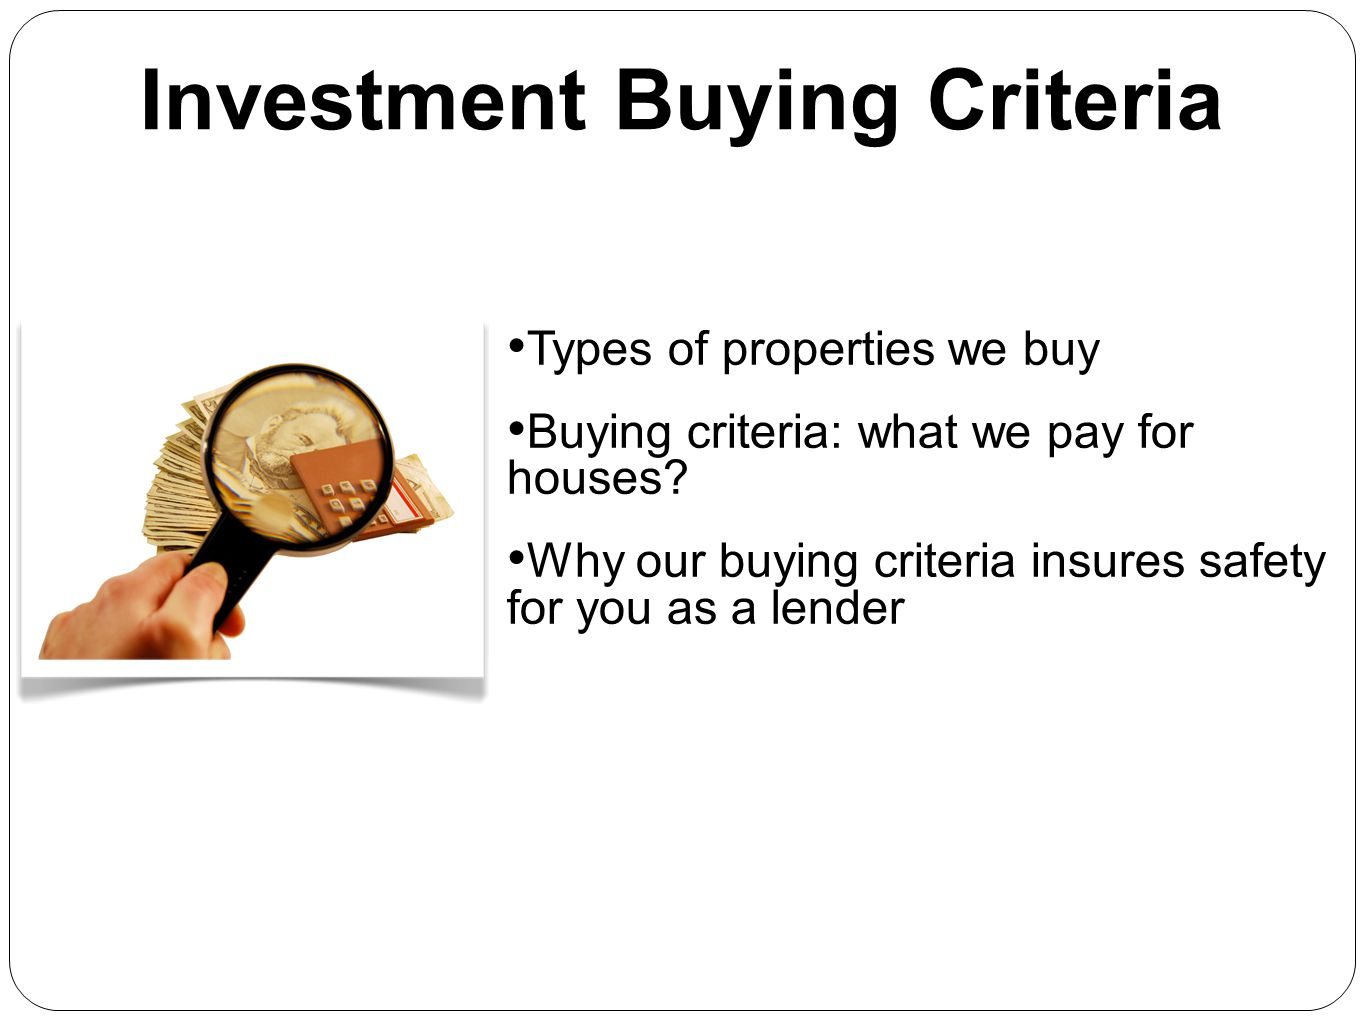 Types of properties we buy Buying criteria: what we pay for houses? Why our buying criteria insures safety for you as a lender